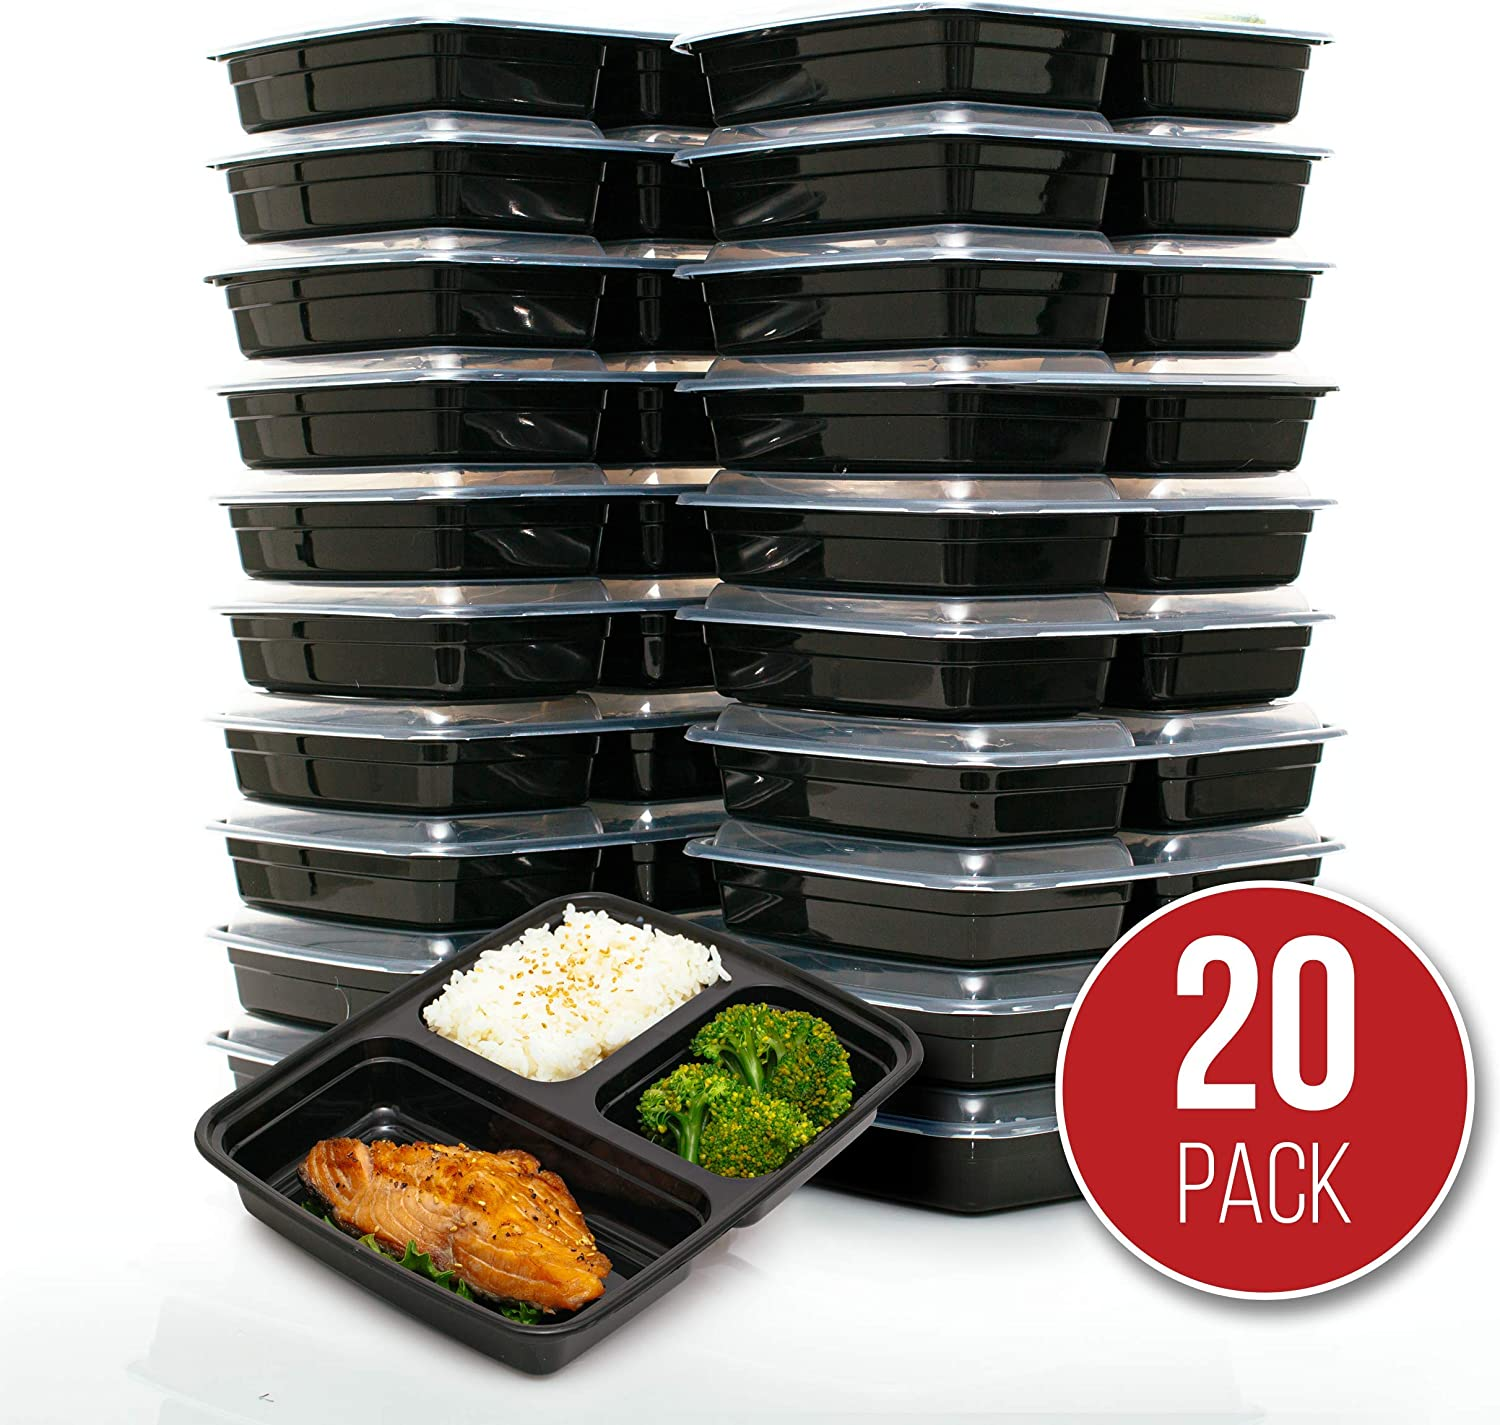 FitBoxx 39 oz Plastic Meal Prep Containers [20 pack], Plastic Food Storage Containers with Lids, 3 Compartment To Go Containers, Portion Control Containers, BPA-free